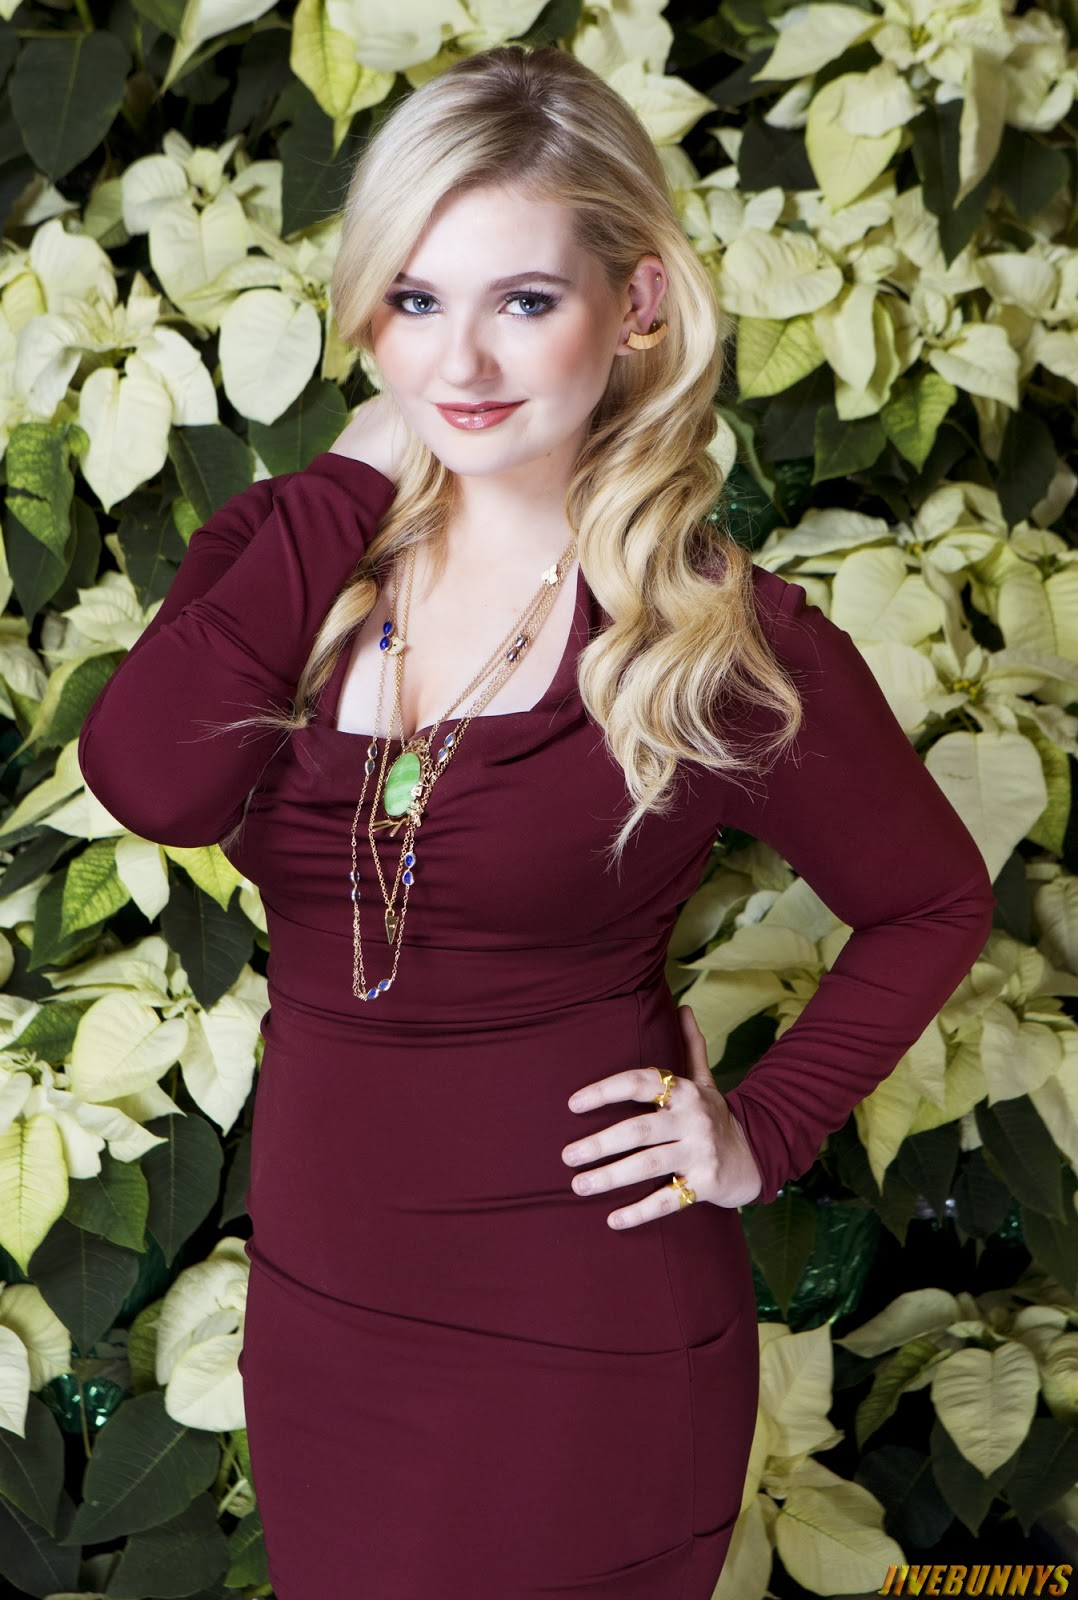 Abigail breslin scream queen images collection